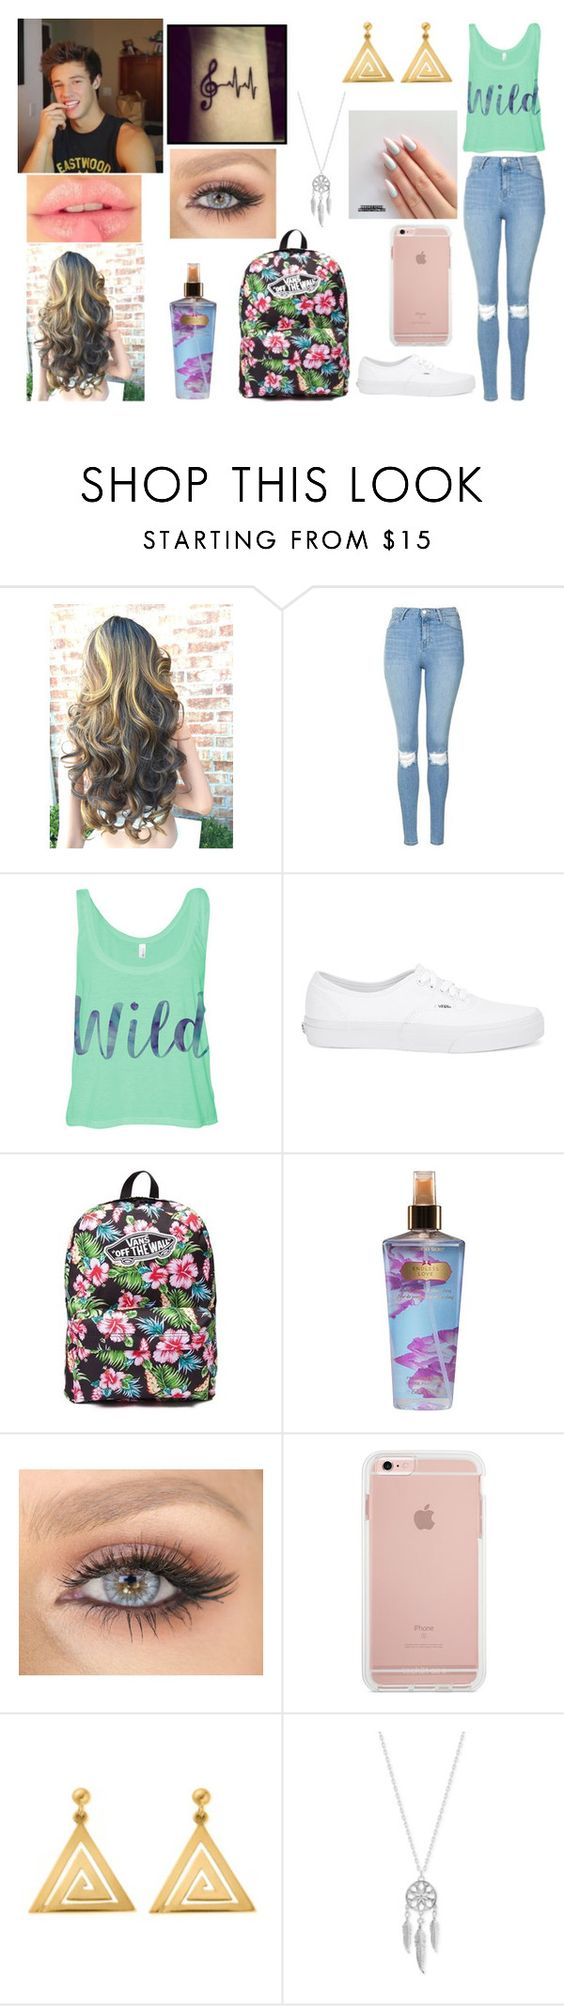 """""""She Bad By Cameron Dallas"""" by jblover-1fan ❤ liked on Polyvore featuring Topshop, Vans, Victoria's Secret, ChloBo and Lucky Brand"""